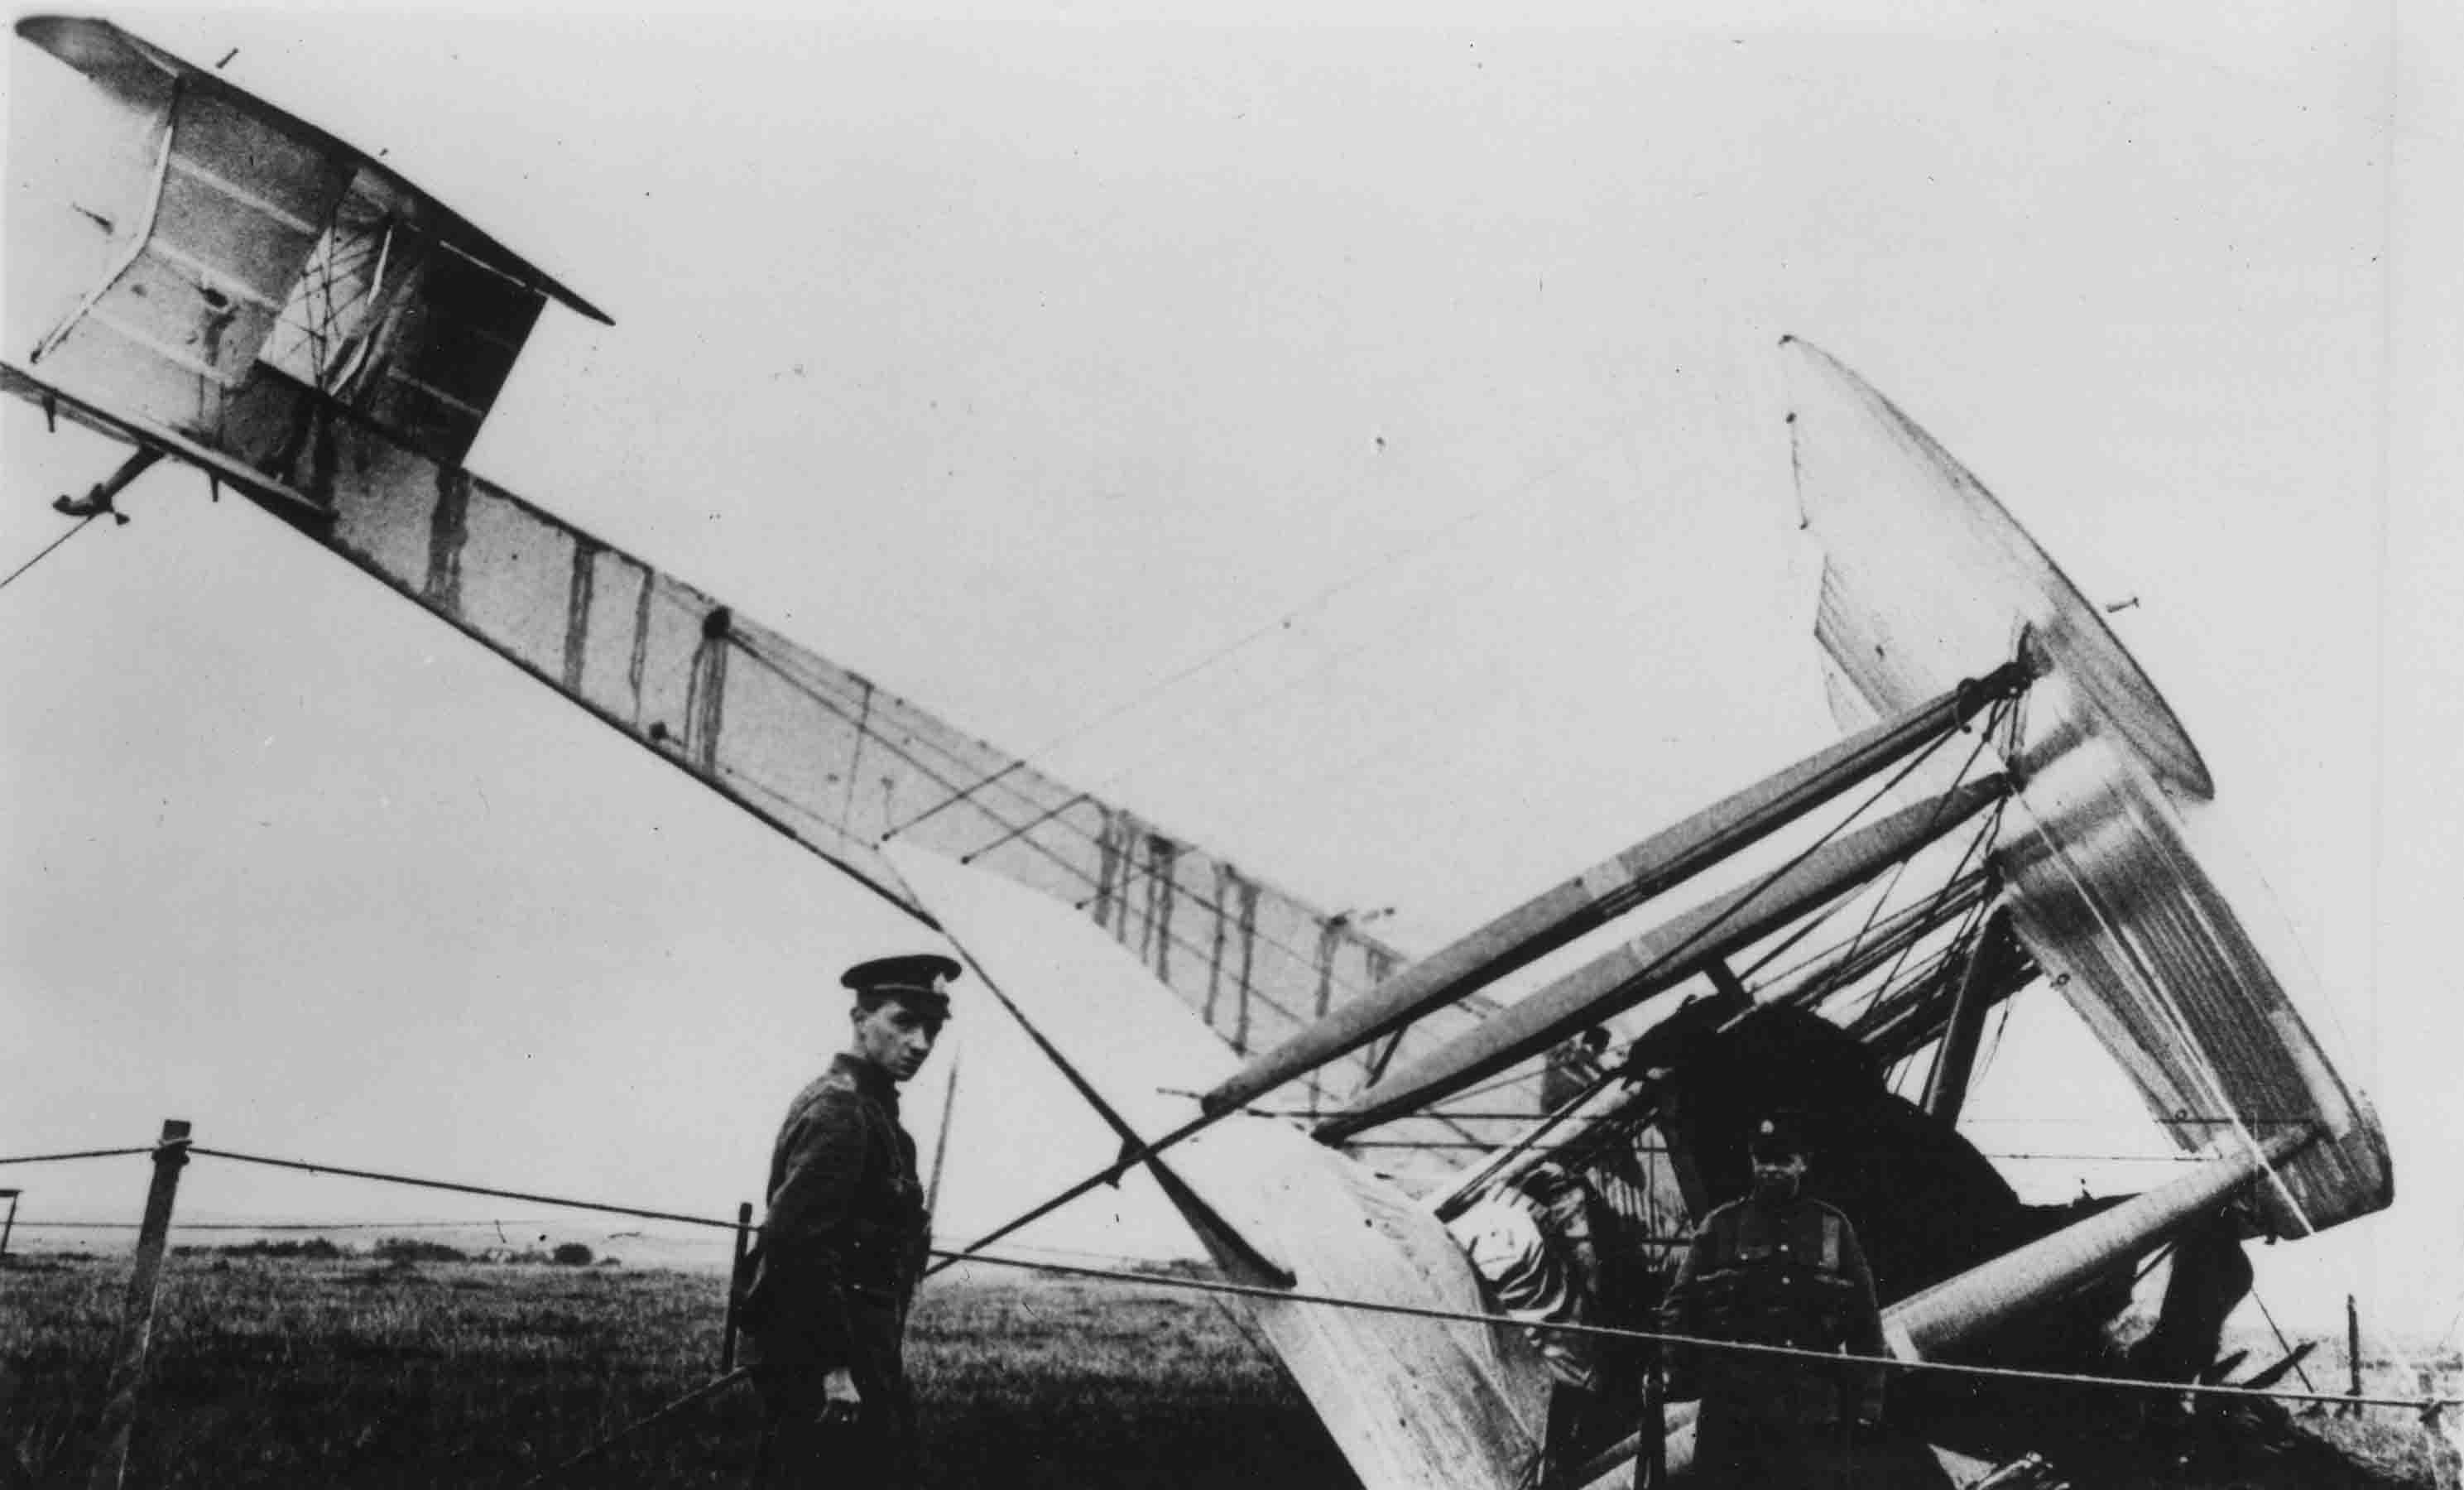 0033-0033 - Vickers Vimy (Alcock and Brown).jpg